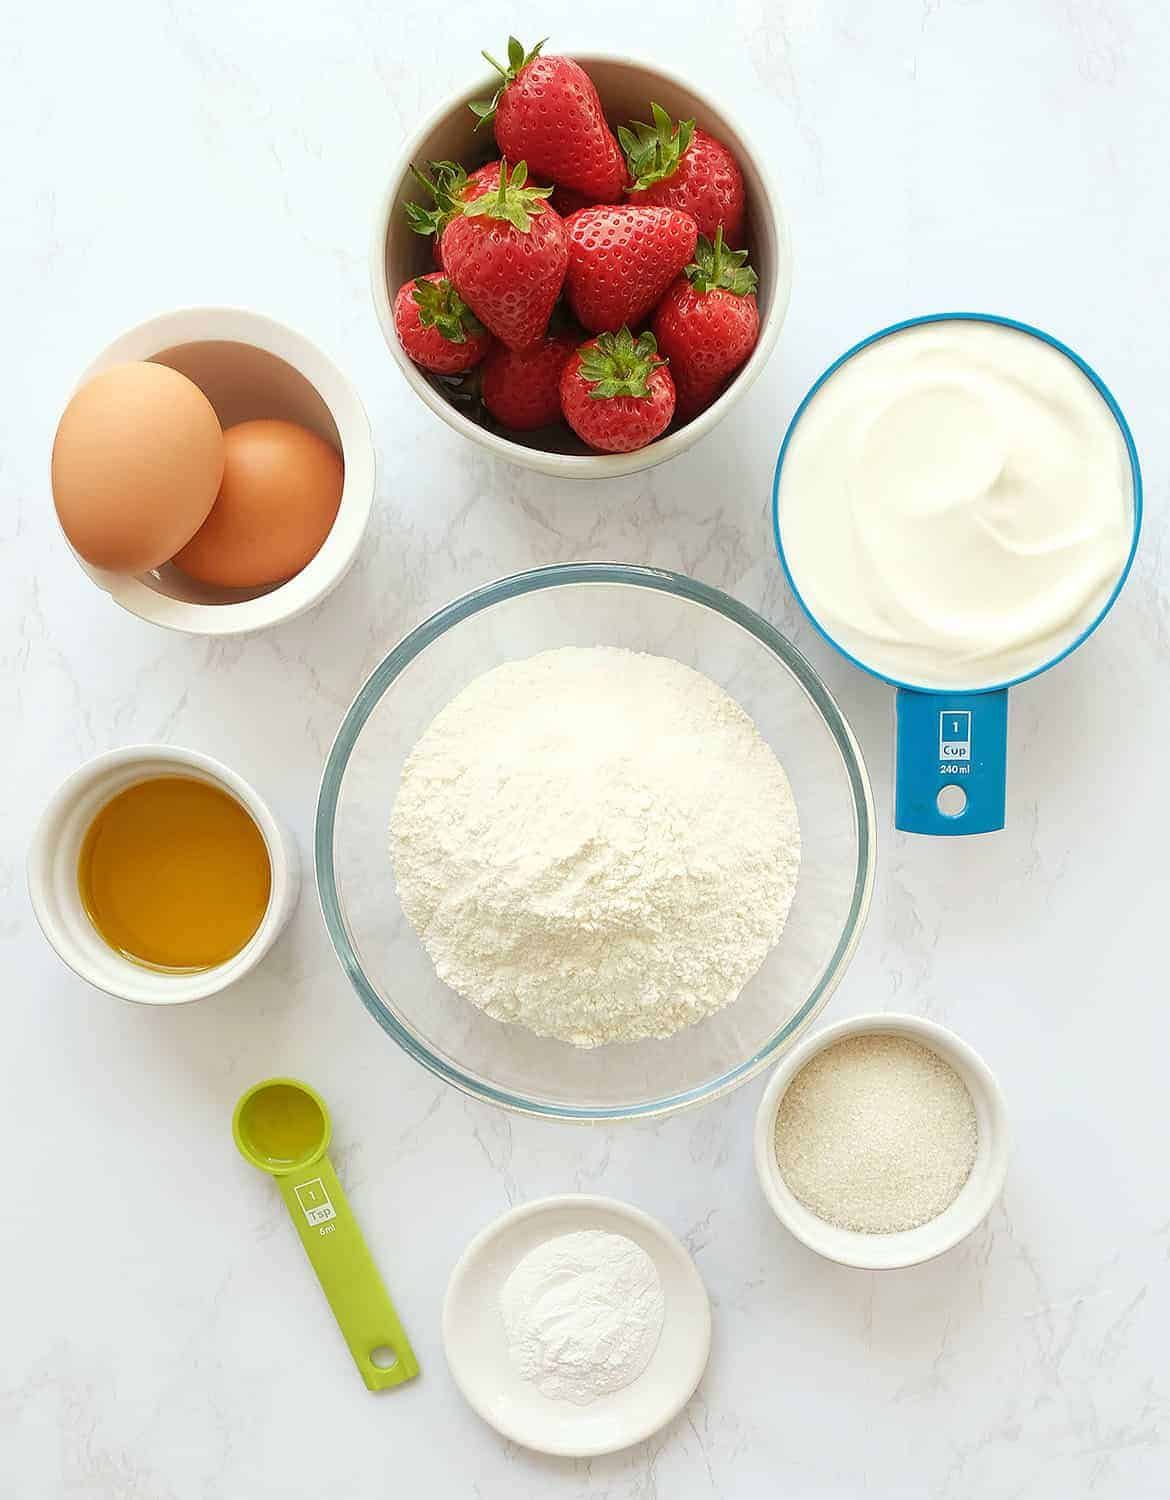 The ingredients for this strawberry bread are arranged on a white marble surface.